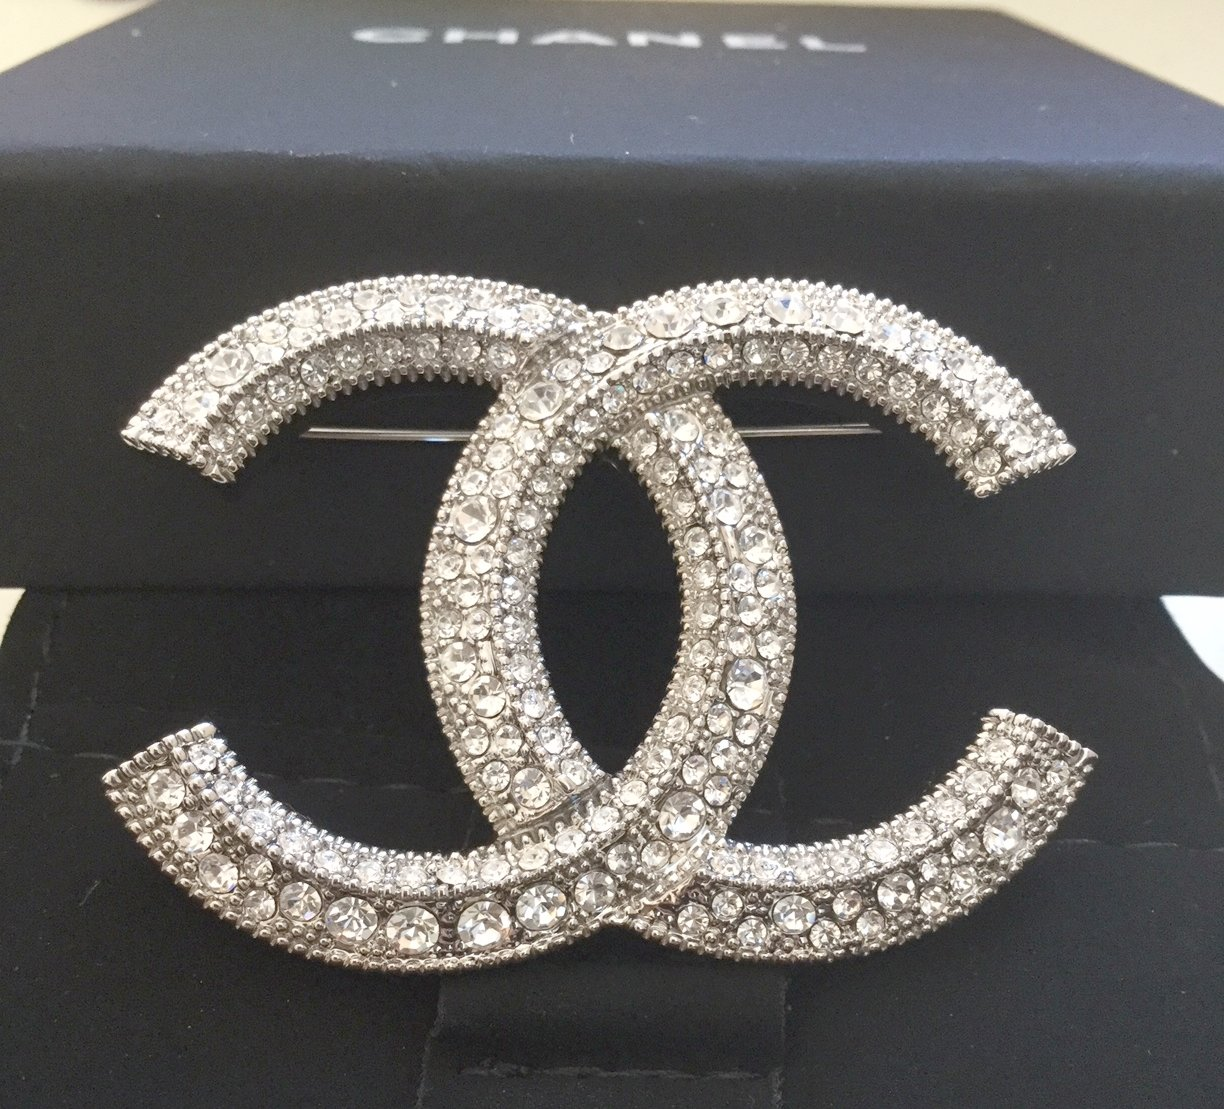 CHANEL CC Crystal Baguette Silver Fashion Brooch Pin Large Authentic NIB